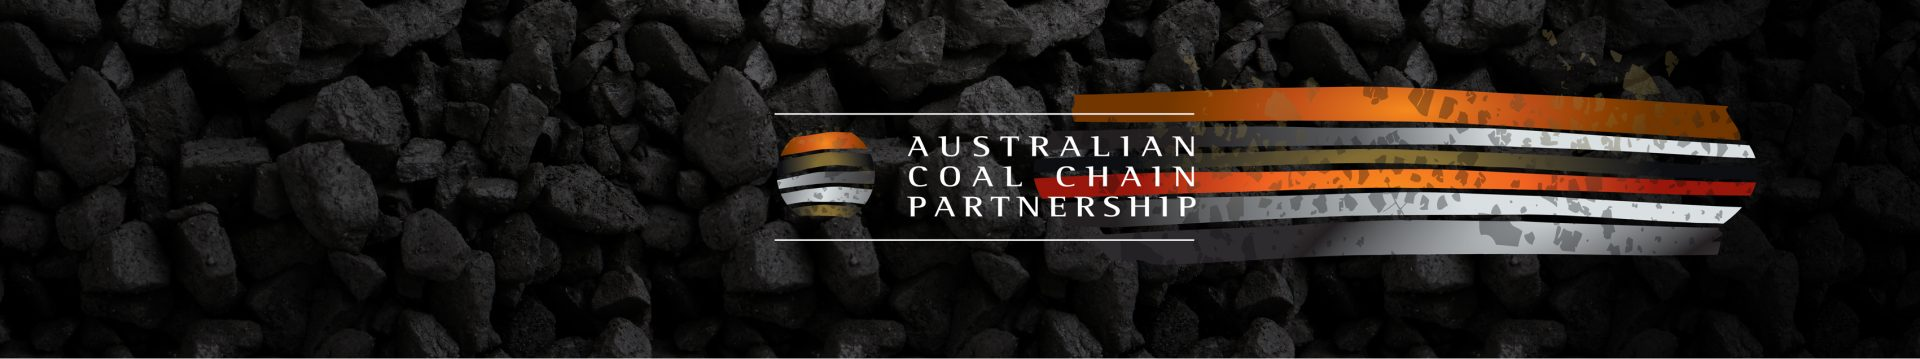 Banner for Australian Coal Chain Partnership Branding